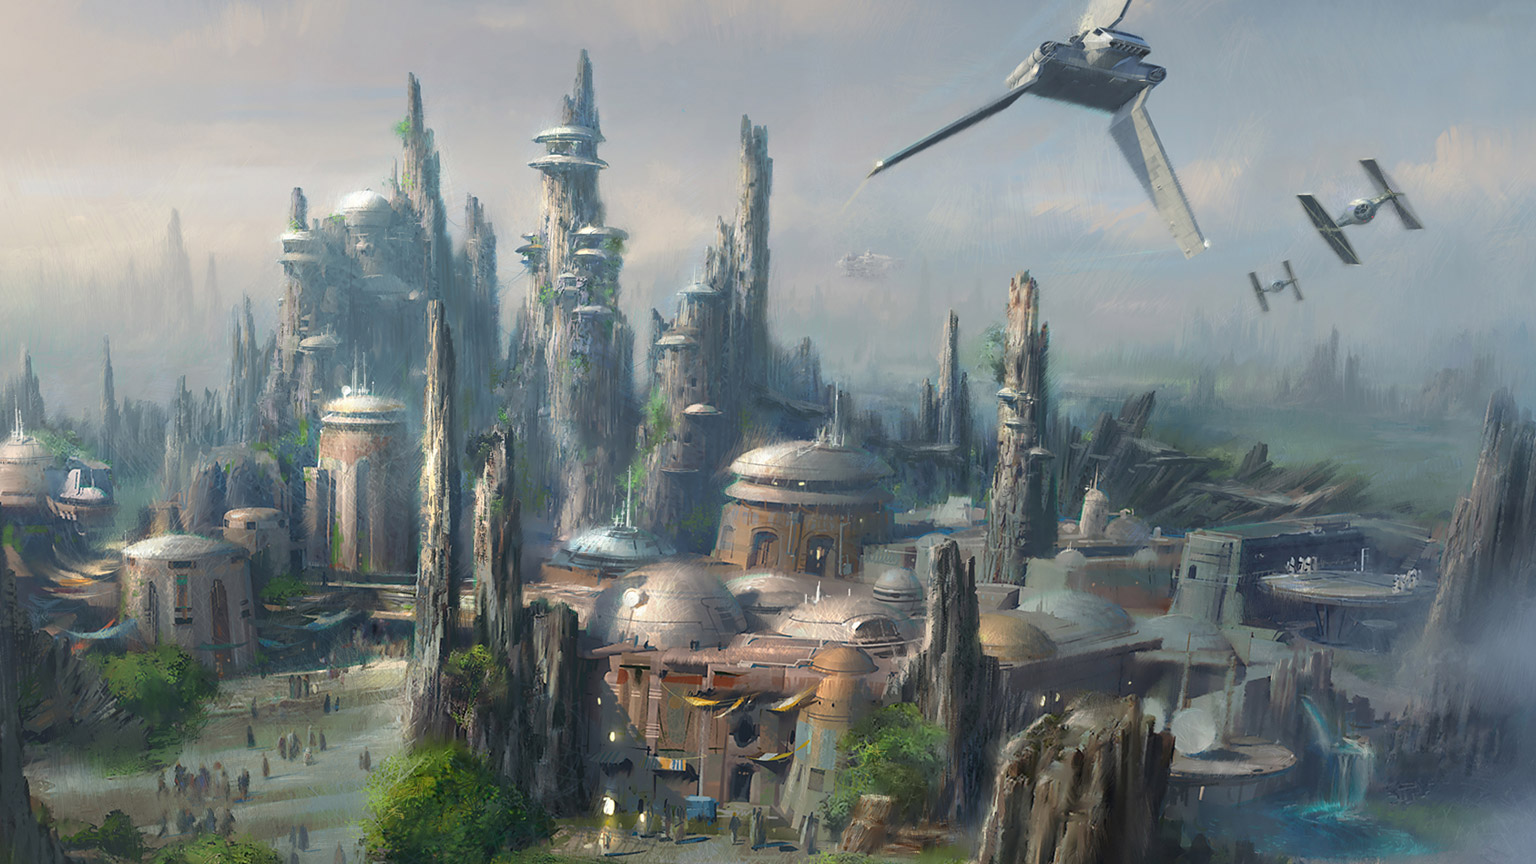 Concept art for Star Wars: Galaxy's Edge.